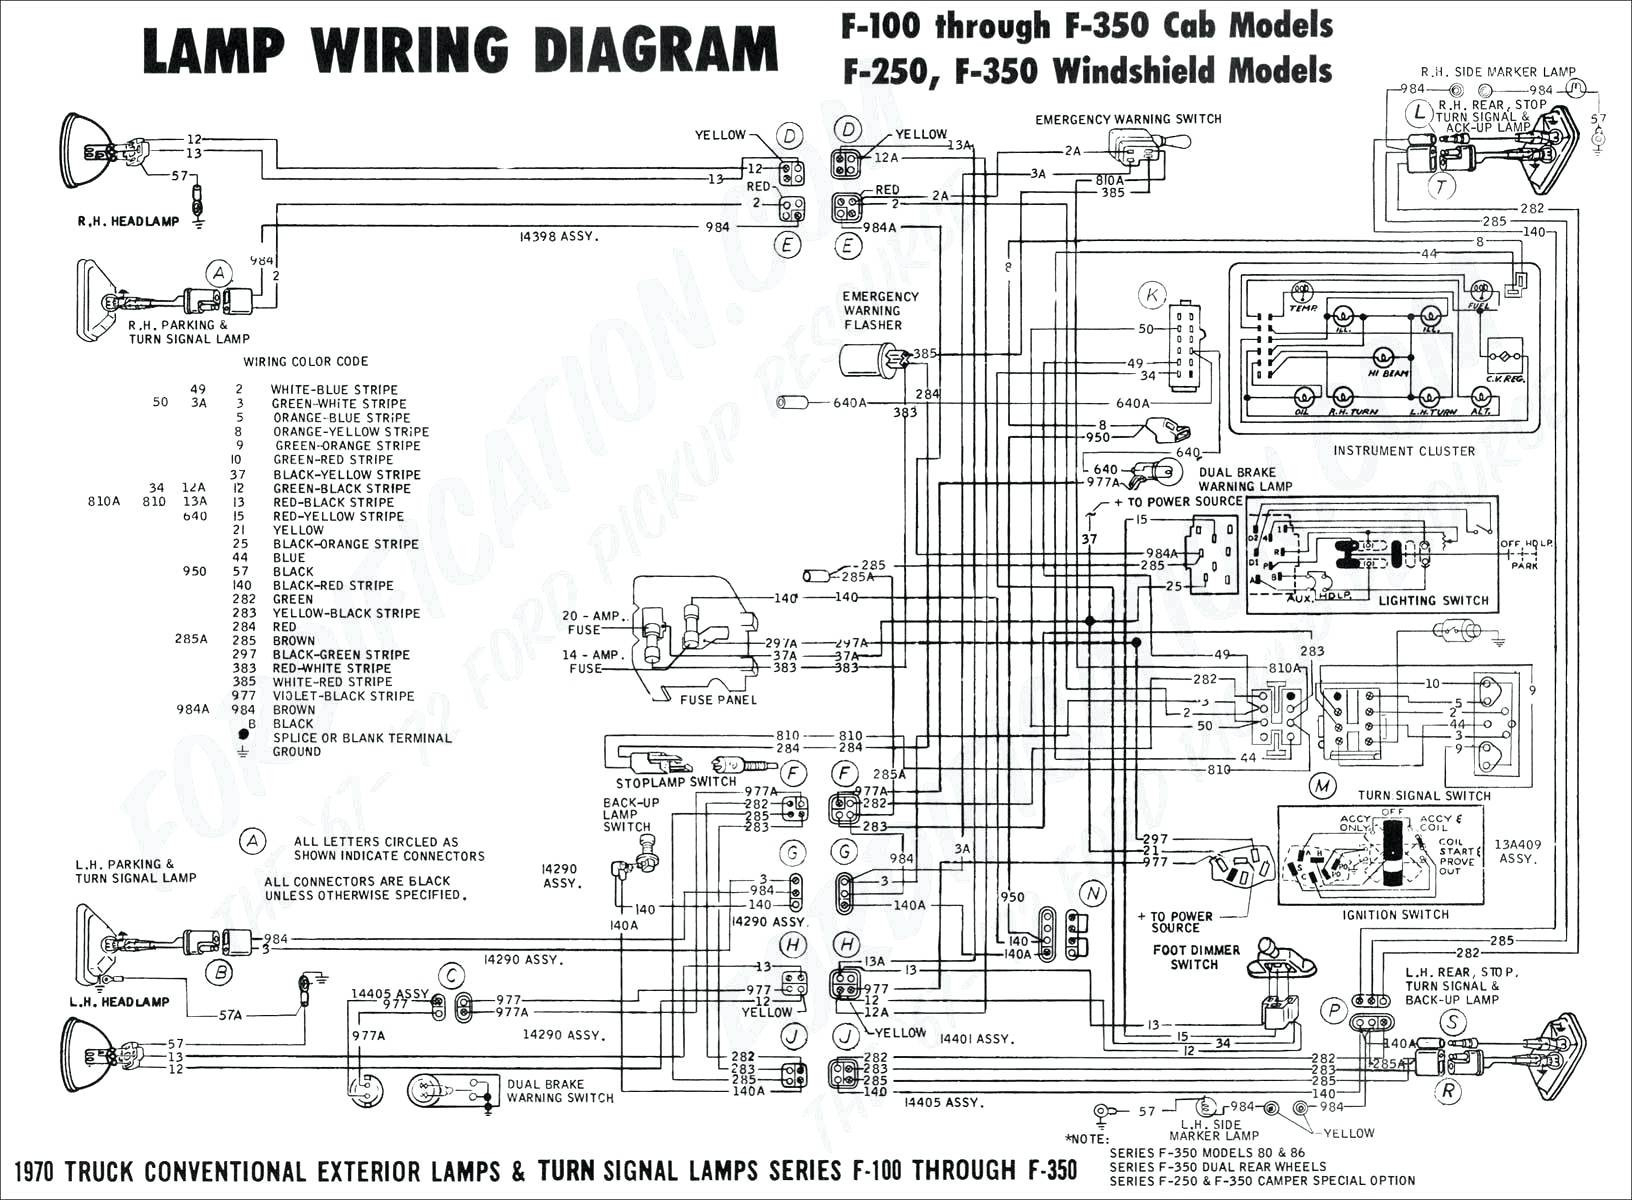 2001 Ford F350 Wiring Schematic - Wiring Diagrams Thumbs - 2001 F250 Trailer Wiring Diagram